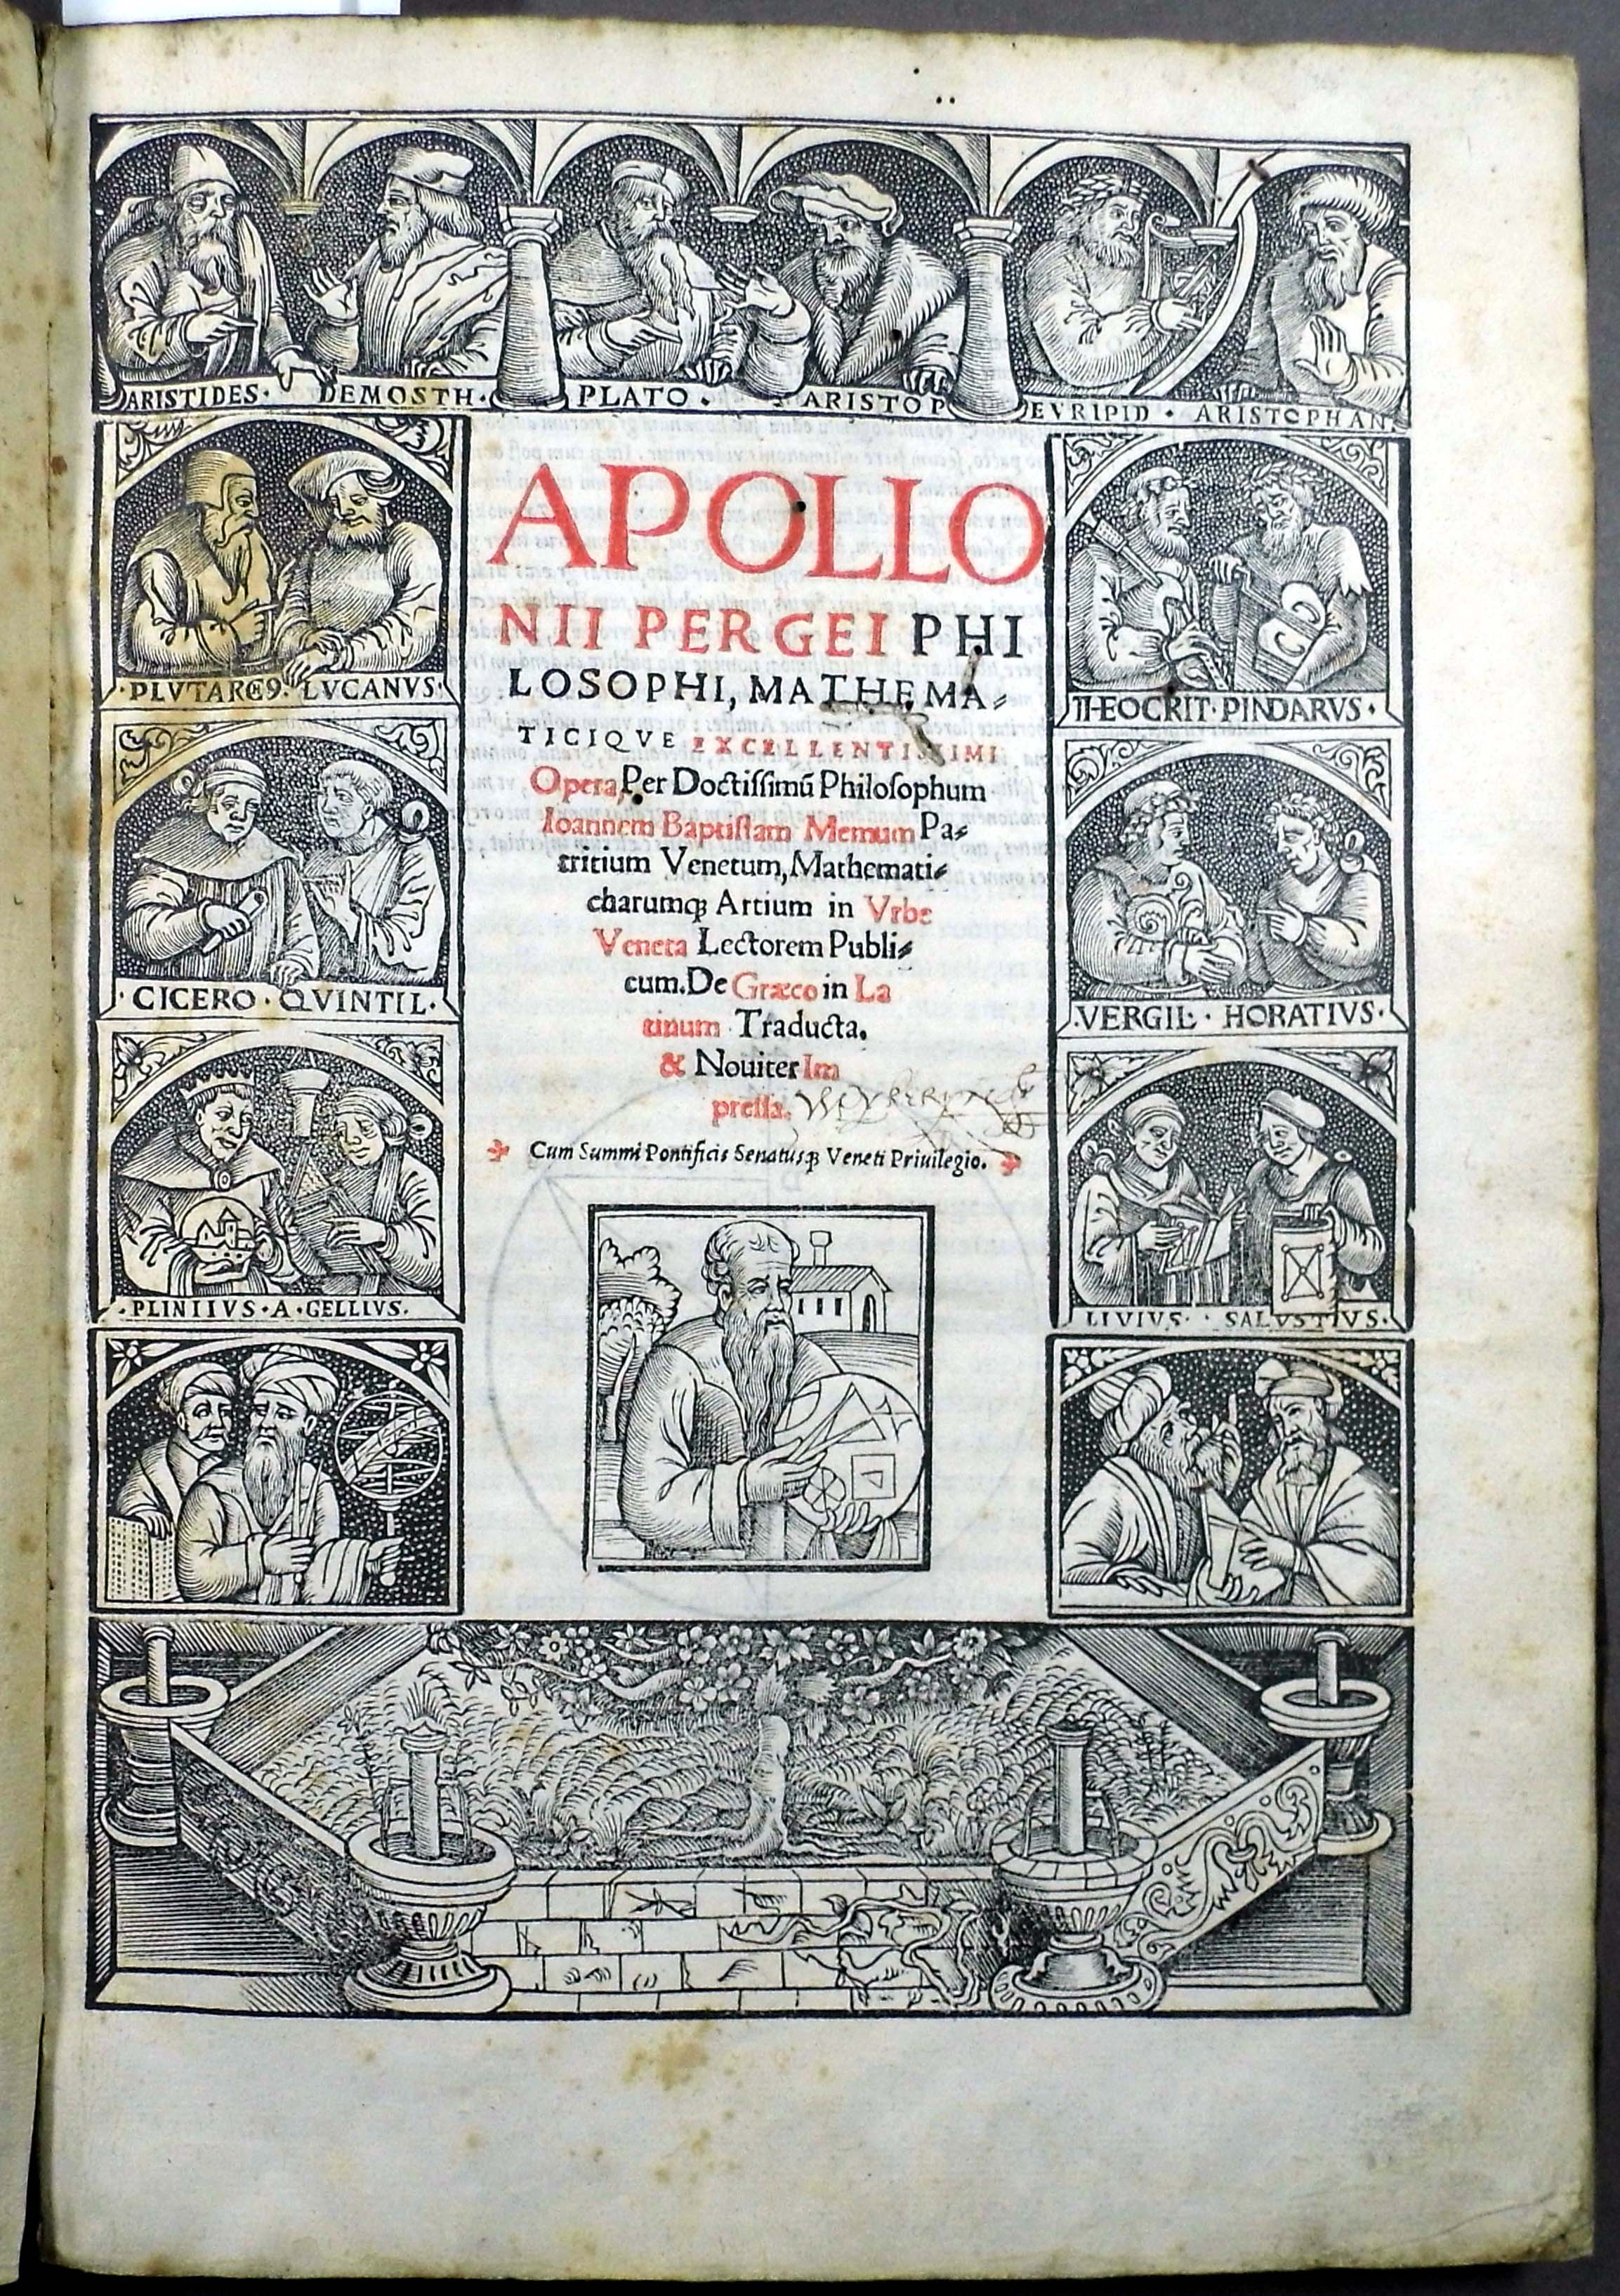 an introduction to the history of apollonius of perga Apollonius of perga apollonius of perga apollonius was a great mathematician, known by his contempories as  the great geometer,  whose treatise conics is one of the greatest scientific works from the ancient world most of his other treatise were lost, although their titles and a general indication of their contents were passed on by later.